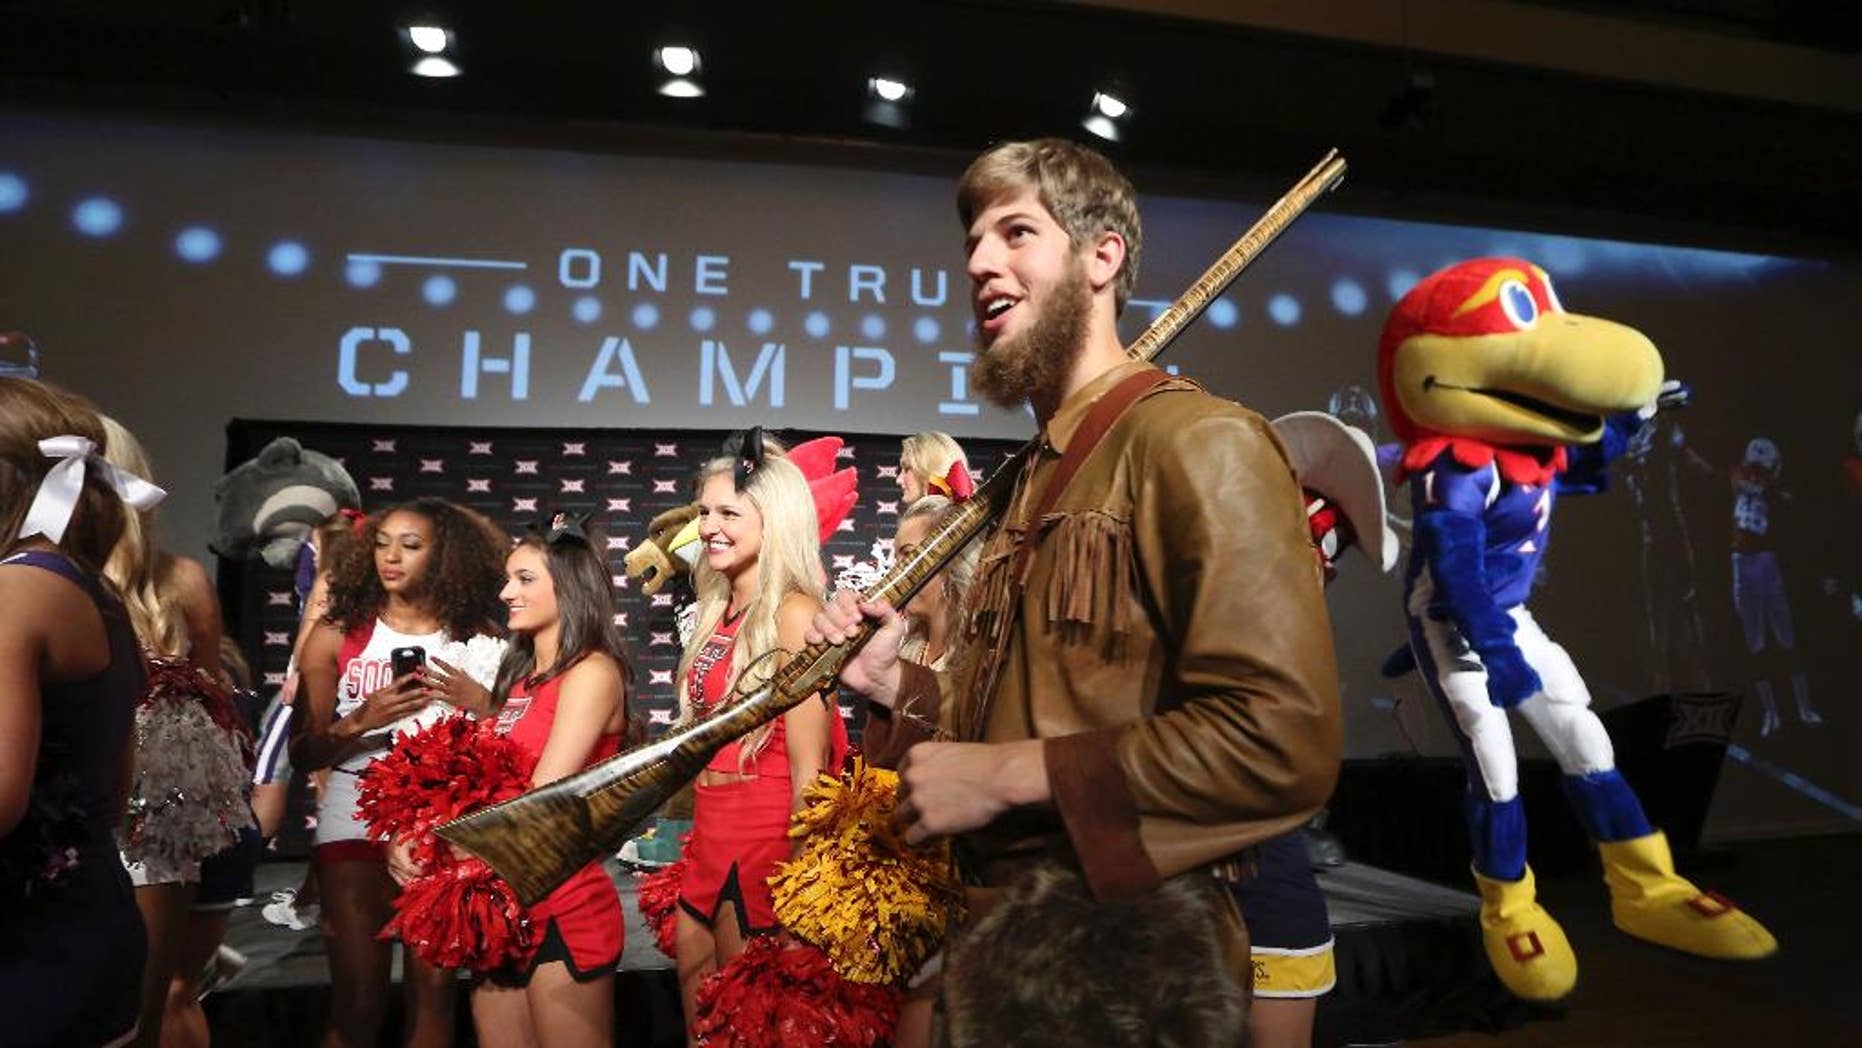 Michael Garcia, dressed as West Virginia's mountaineer mascot, caries a musket after posing for a photo with cheerleaders and mascots at the Big 12 Conference NCAA college football media days in Dallas, Tuesday, July 22, 2014. (AP Photo)